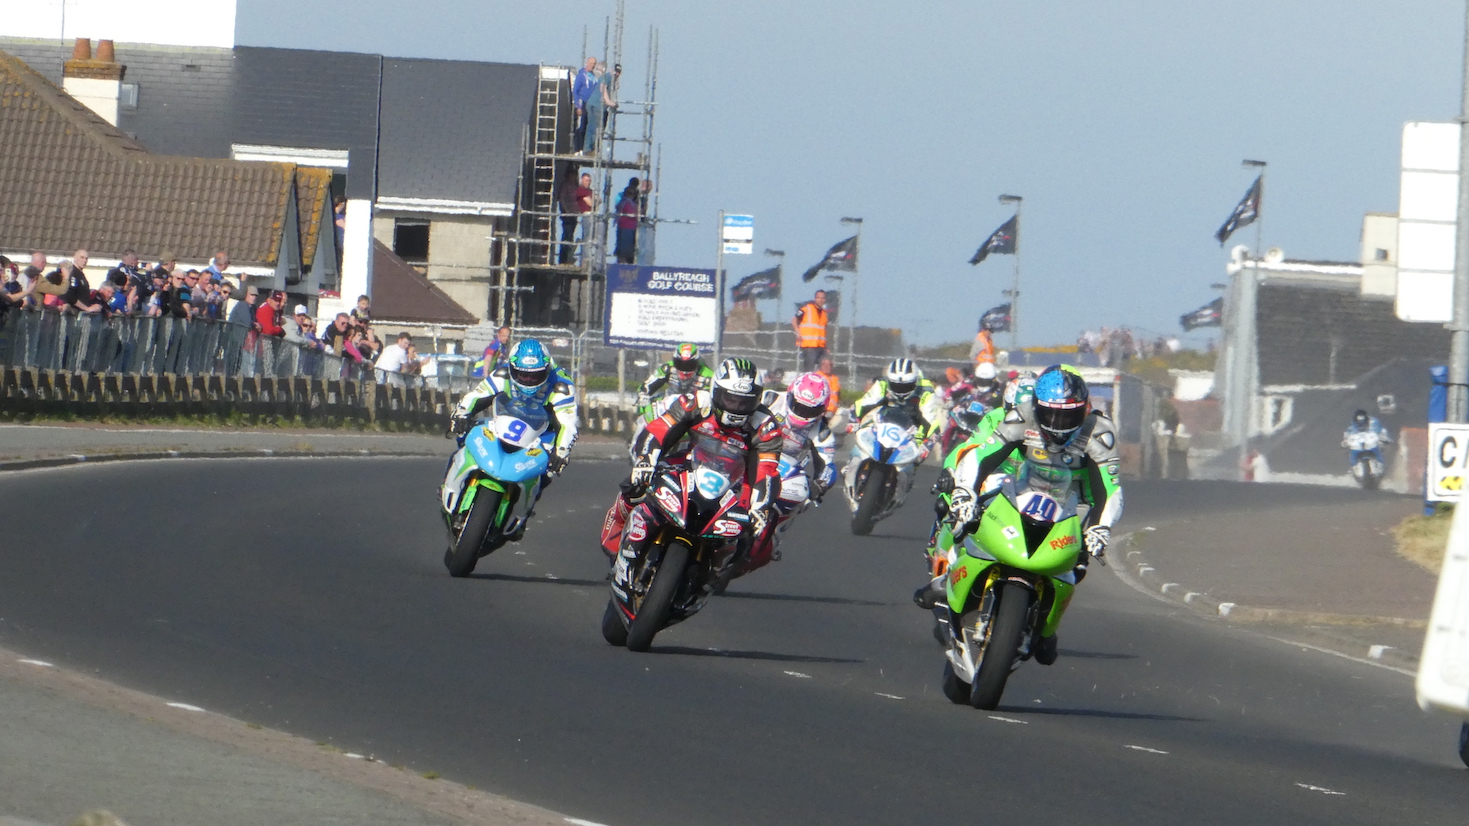 Thursday Night Action at the 2017 NW200 Event